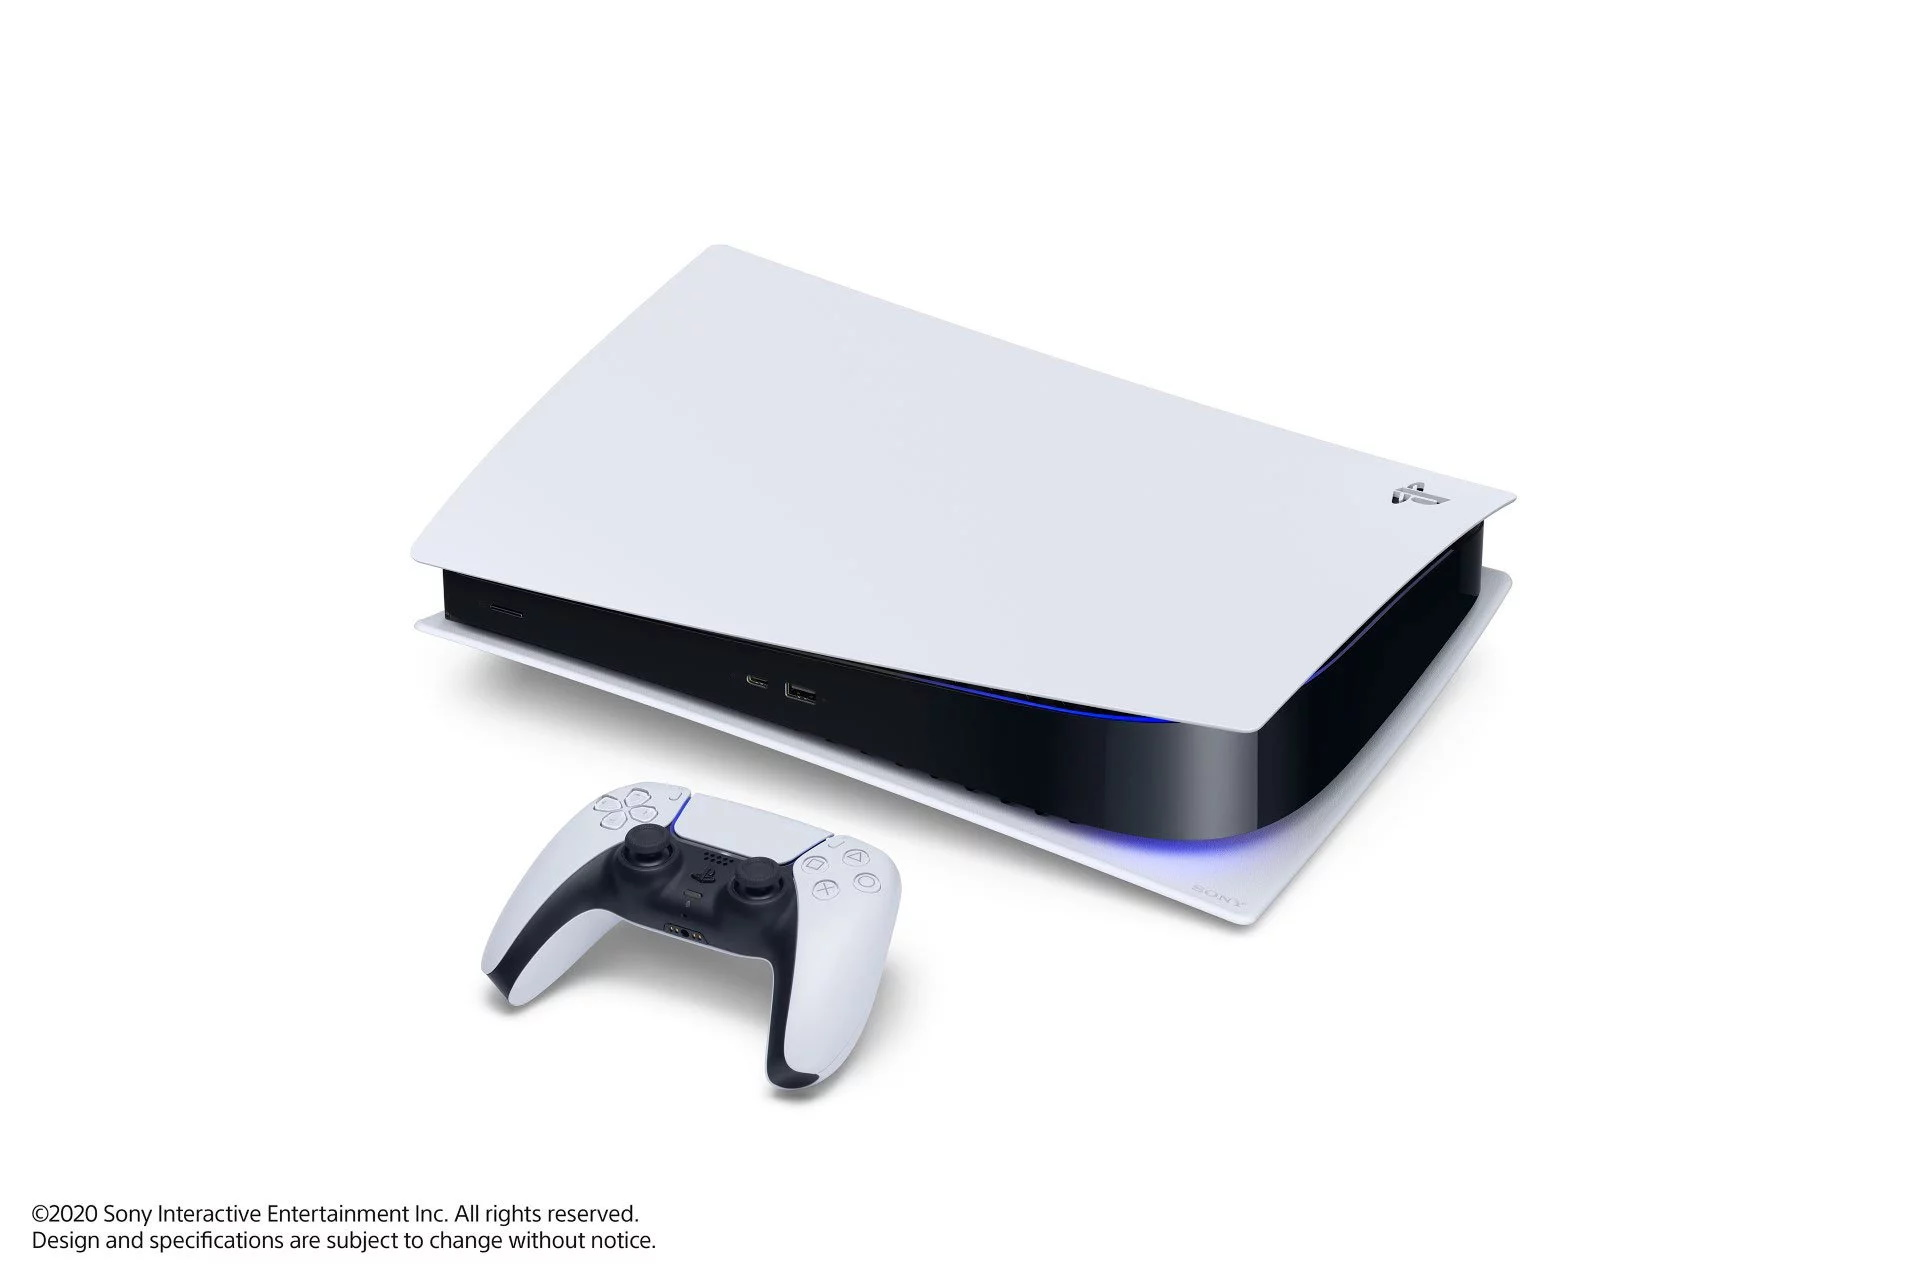 ps5-pre-orders-could-be-limited-to-one-per-household-by-sony.jpg